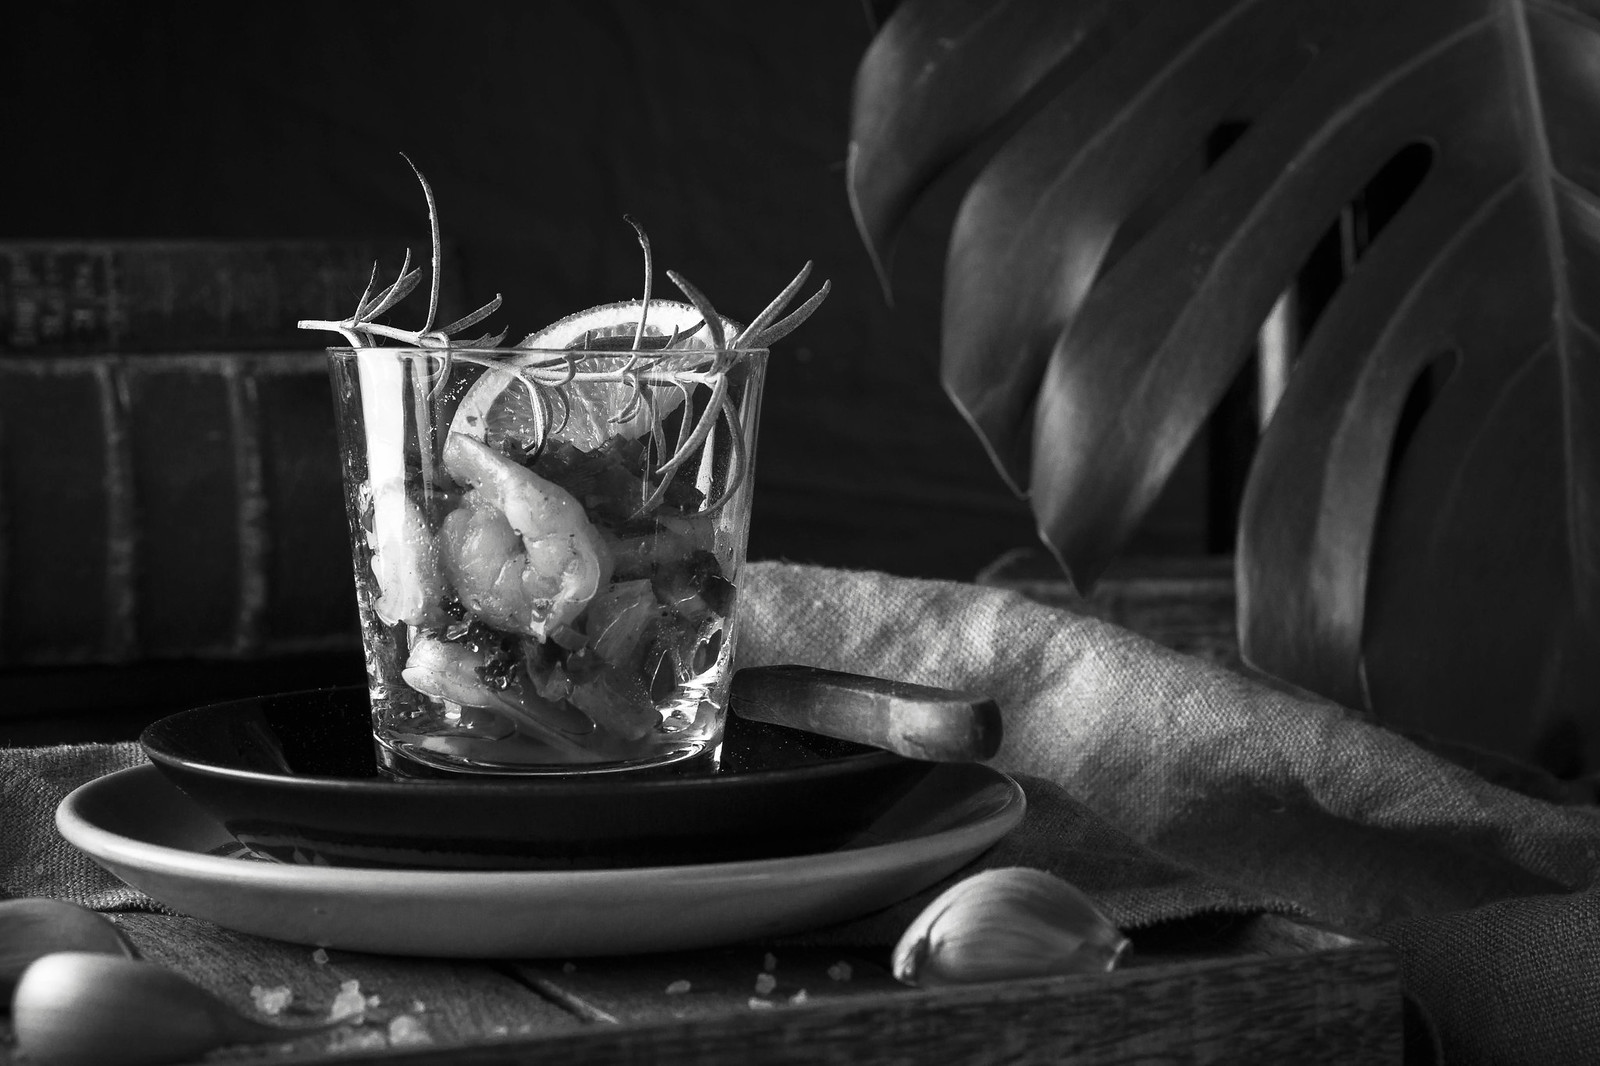 Shrimps in a glass